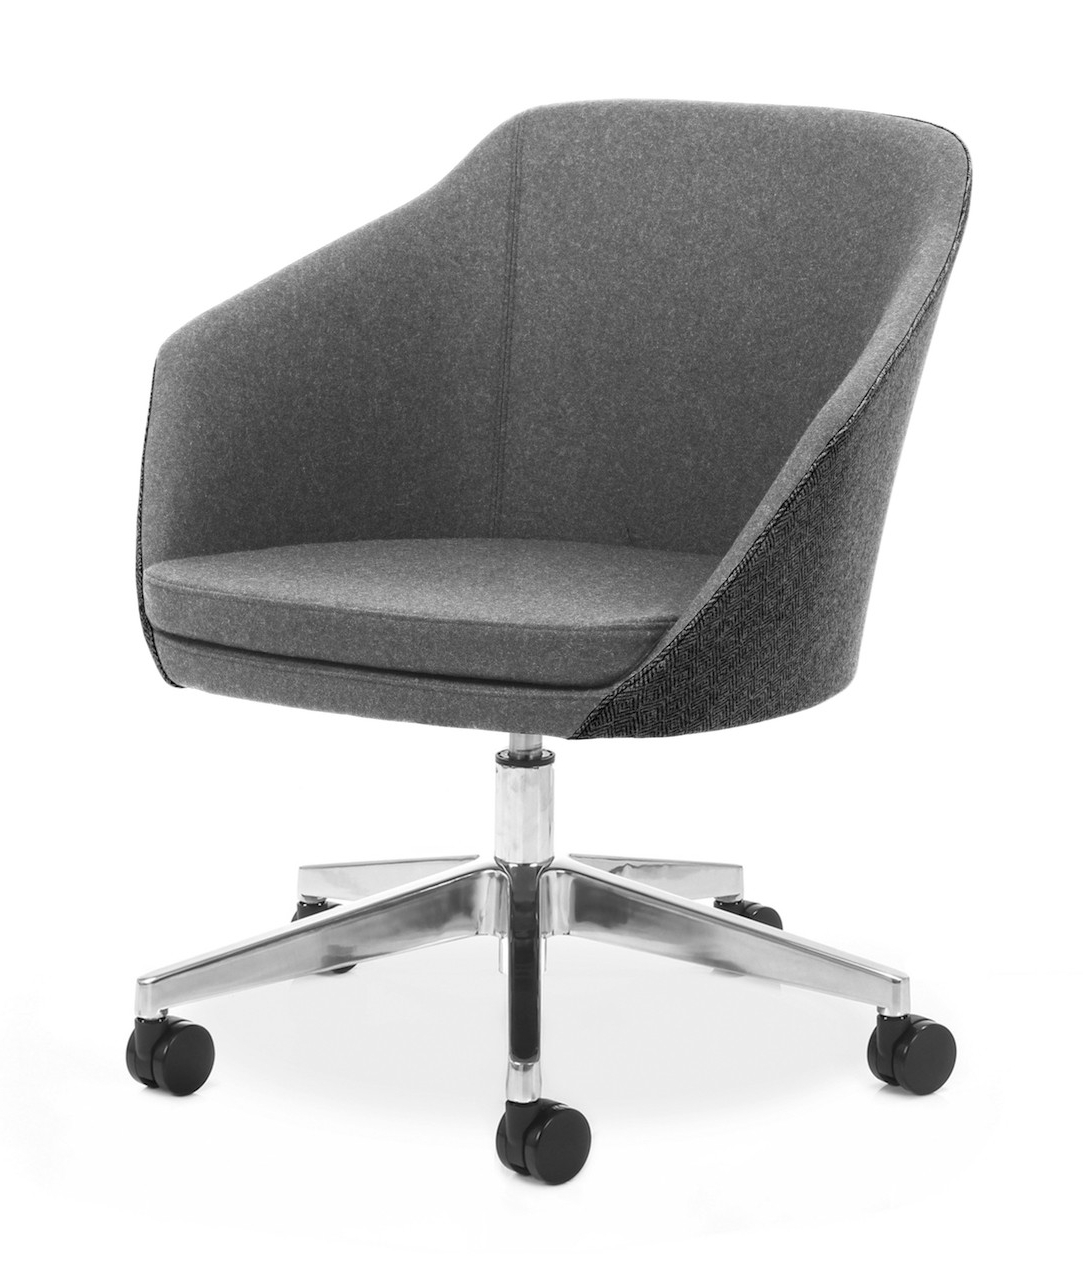 Best And Newest Chill Swivel Chairs With Metal Base For Annette: 5 Point Castor Base Office Furniture, Desk Chairs, Task (View 9 of 20)